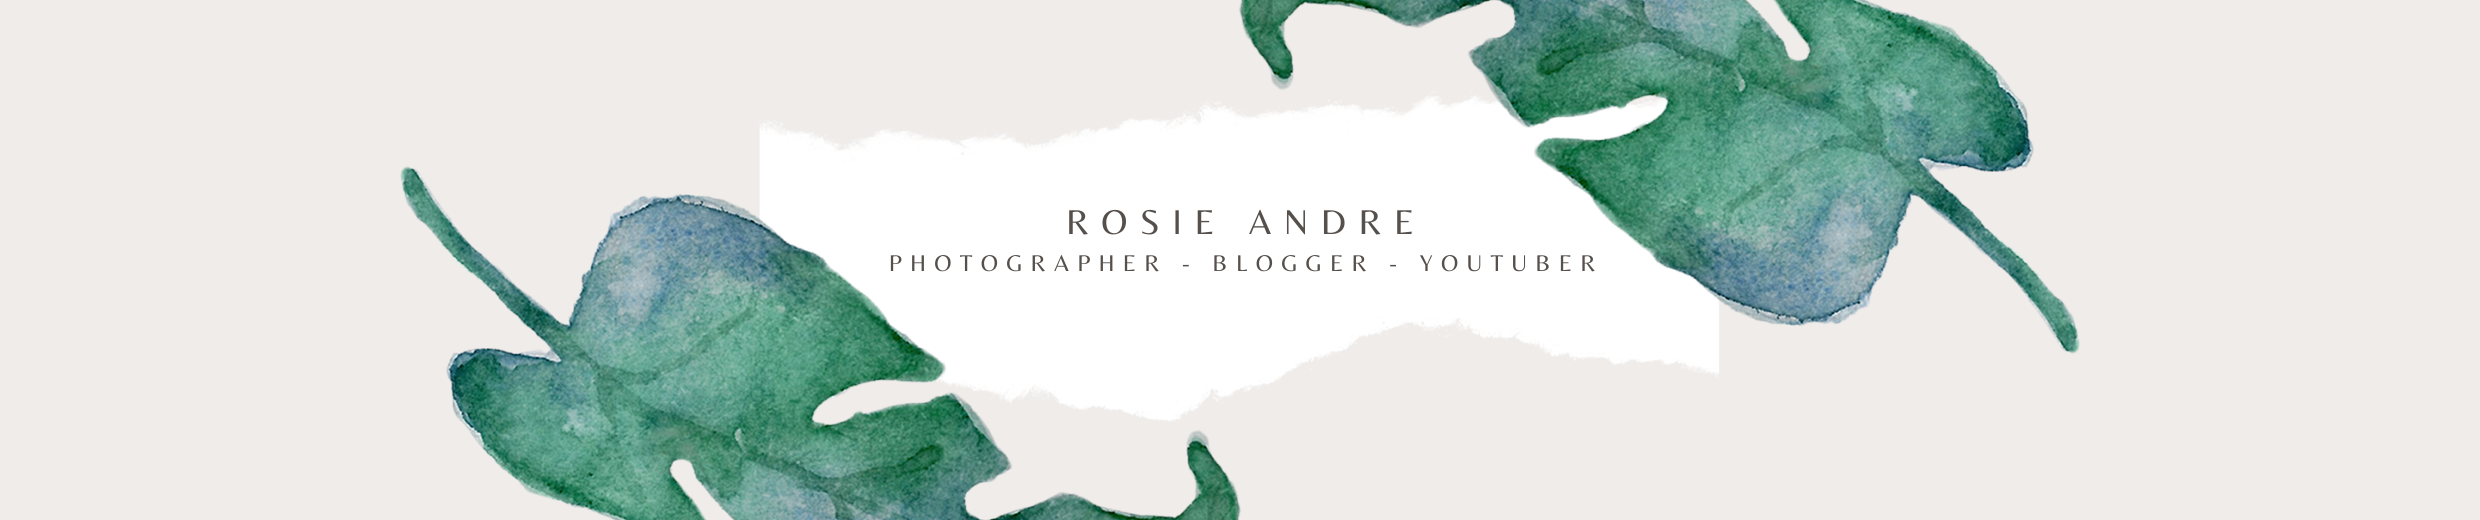 Rosie Andre